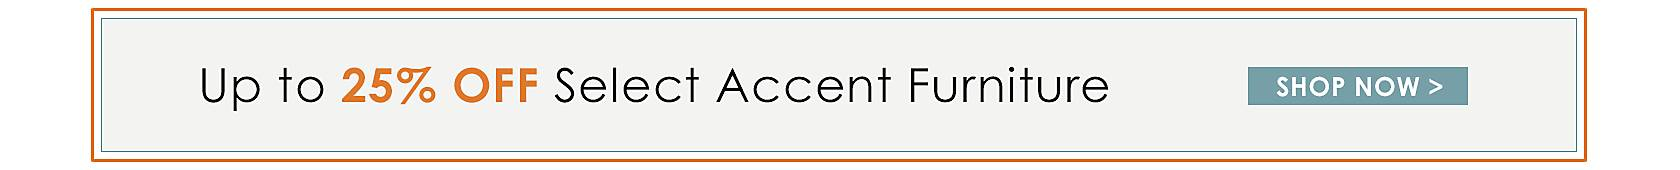 Up to 25% Off Select Accent Furniture - Shop Now